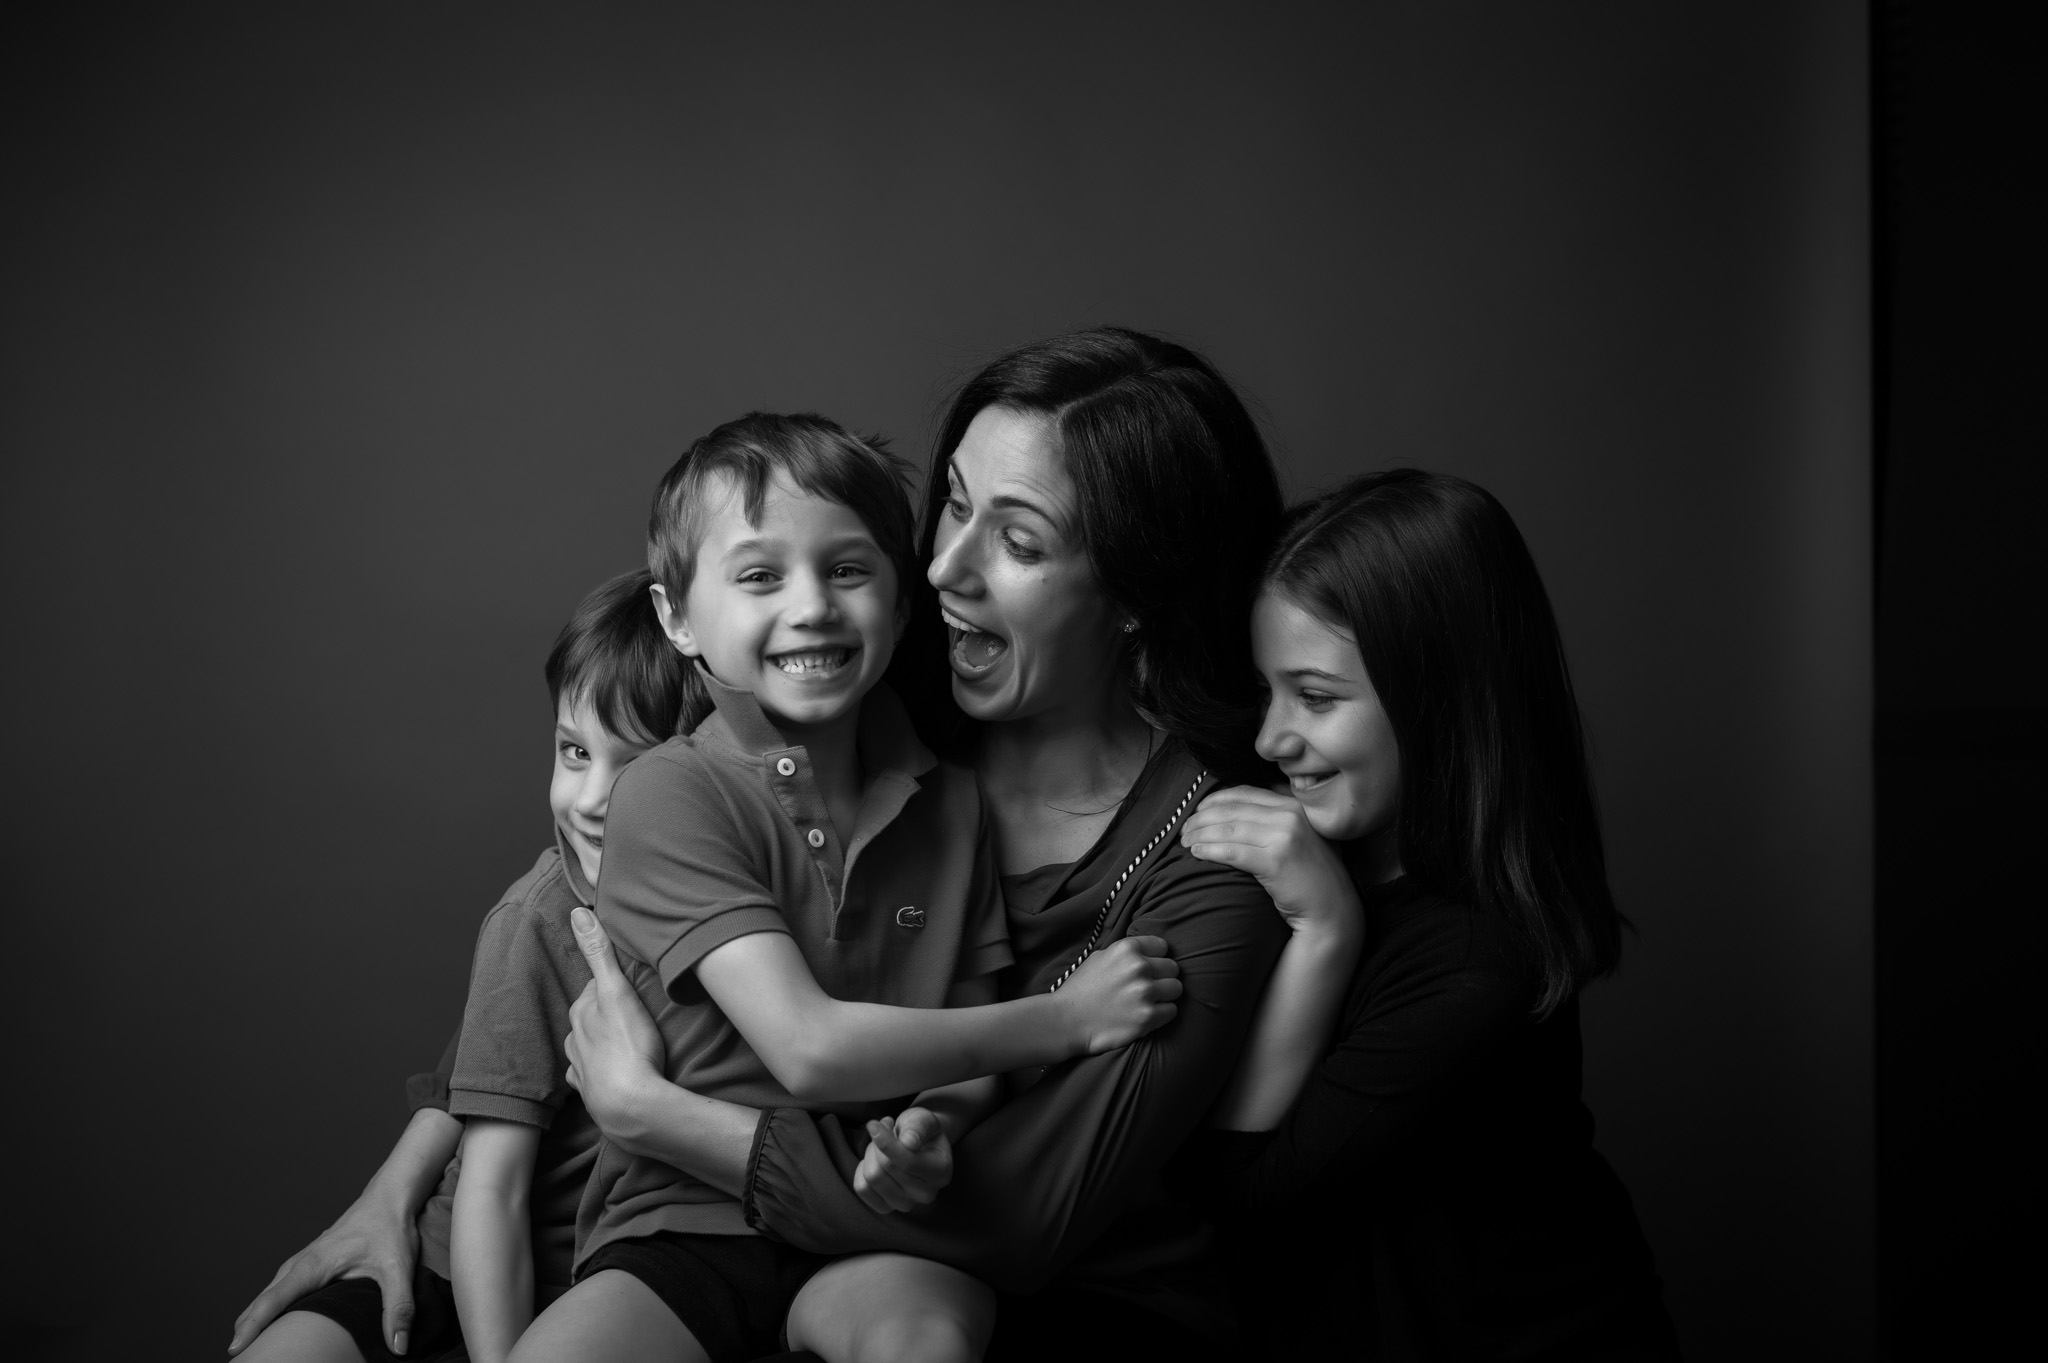 studio family portraiture by Erin Borzellino. NYC area